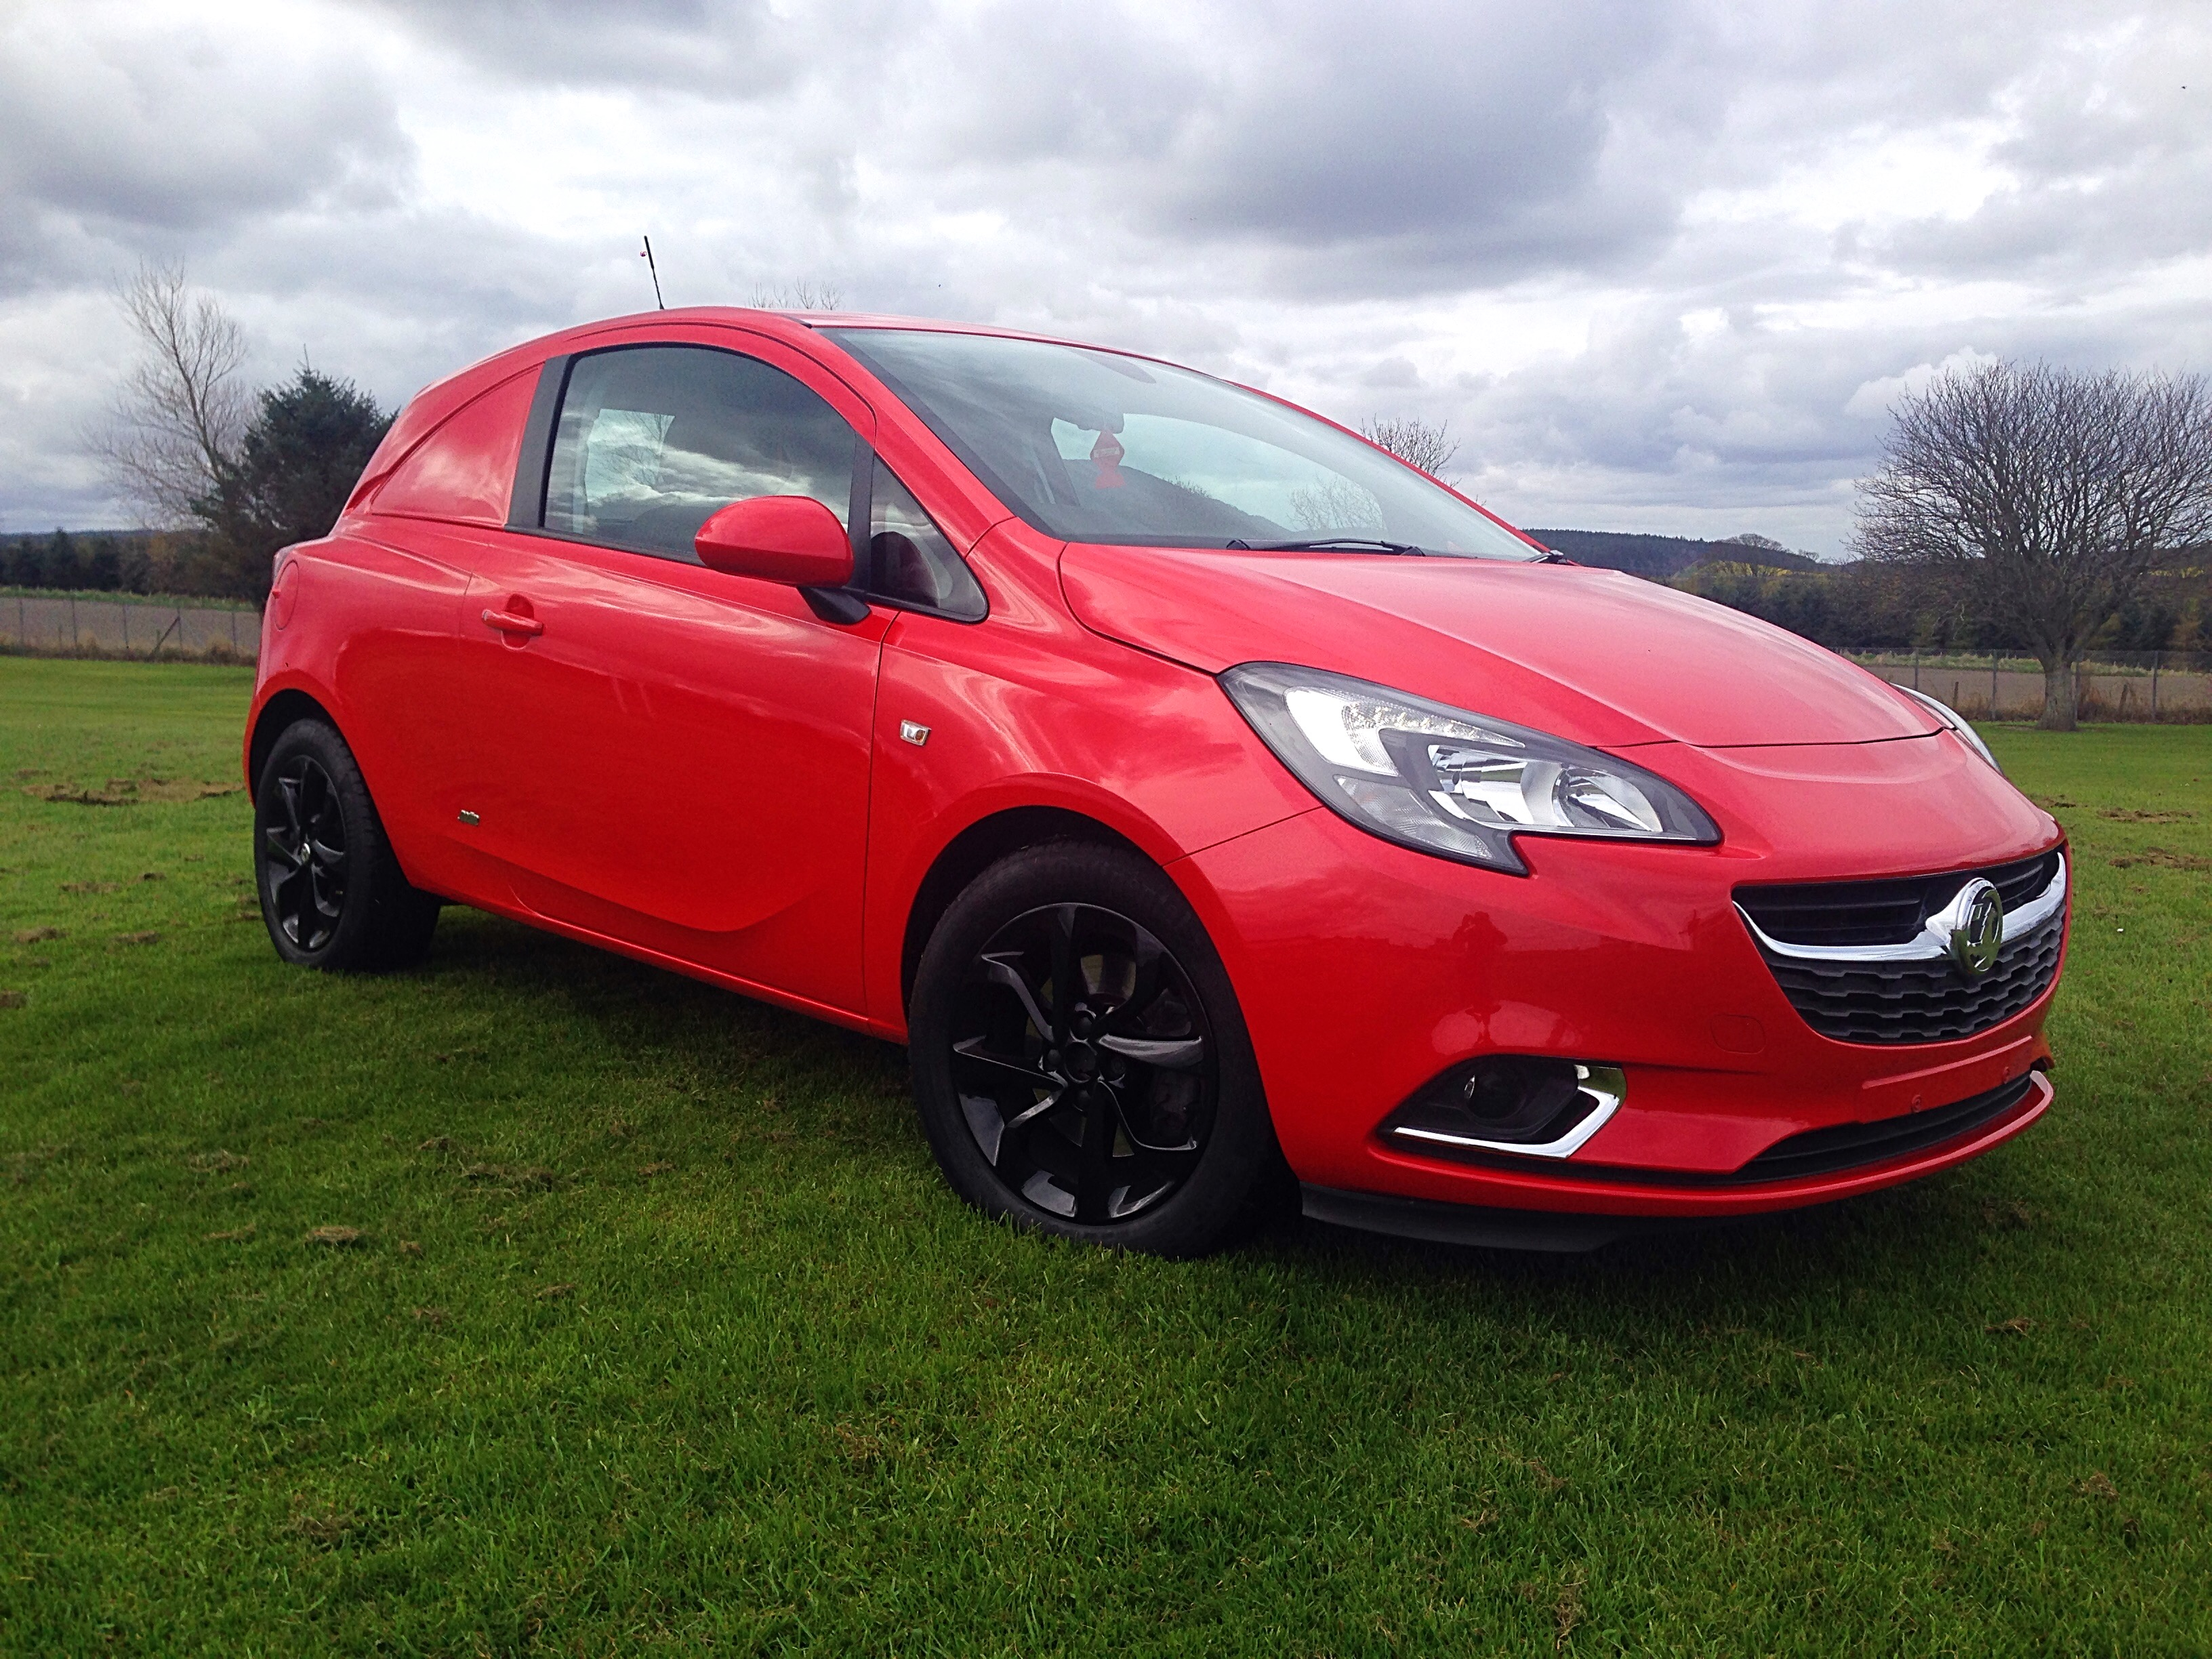 vauxhall corsa sportive 1 3 cdti 95 bhp 2015 no vat g. Black Bedroom Furniture Sets. Home Design Ideas